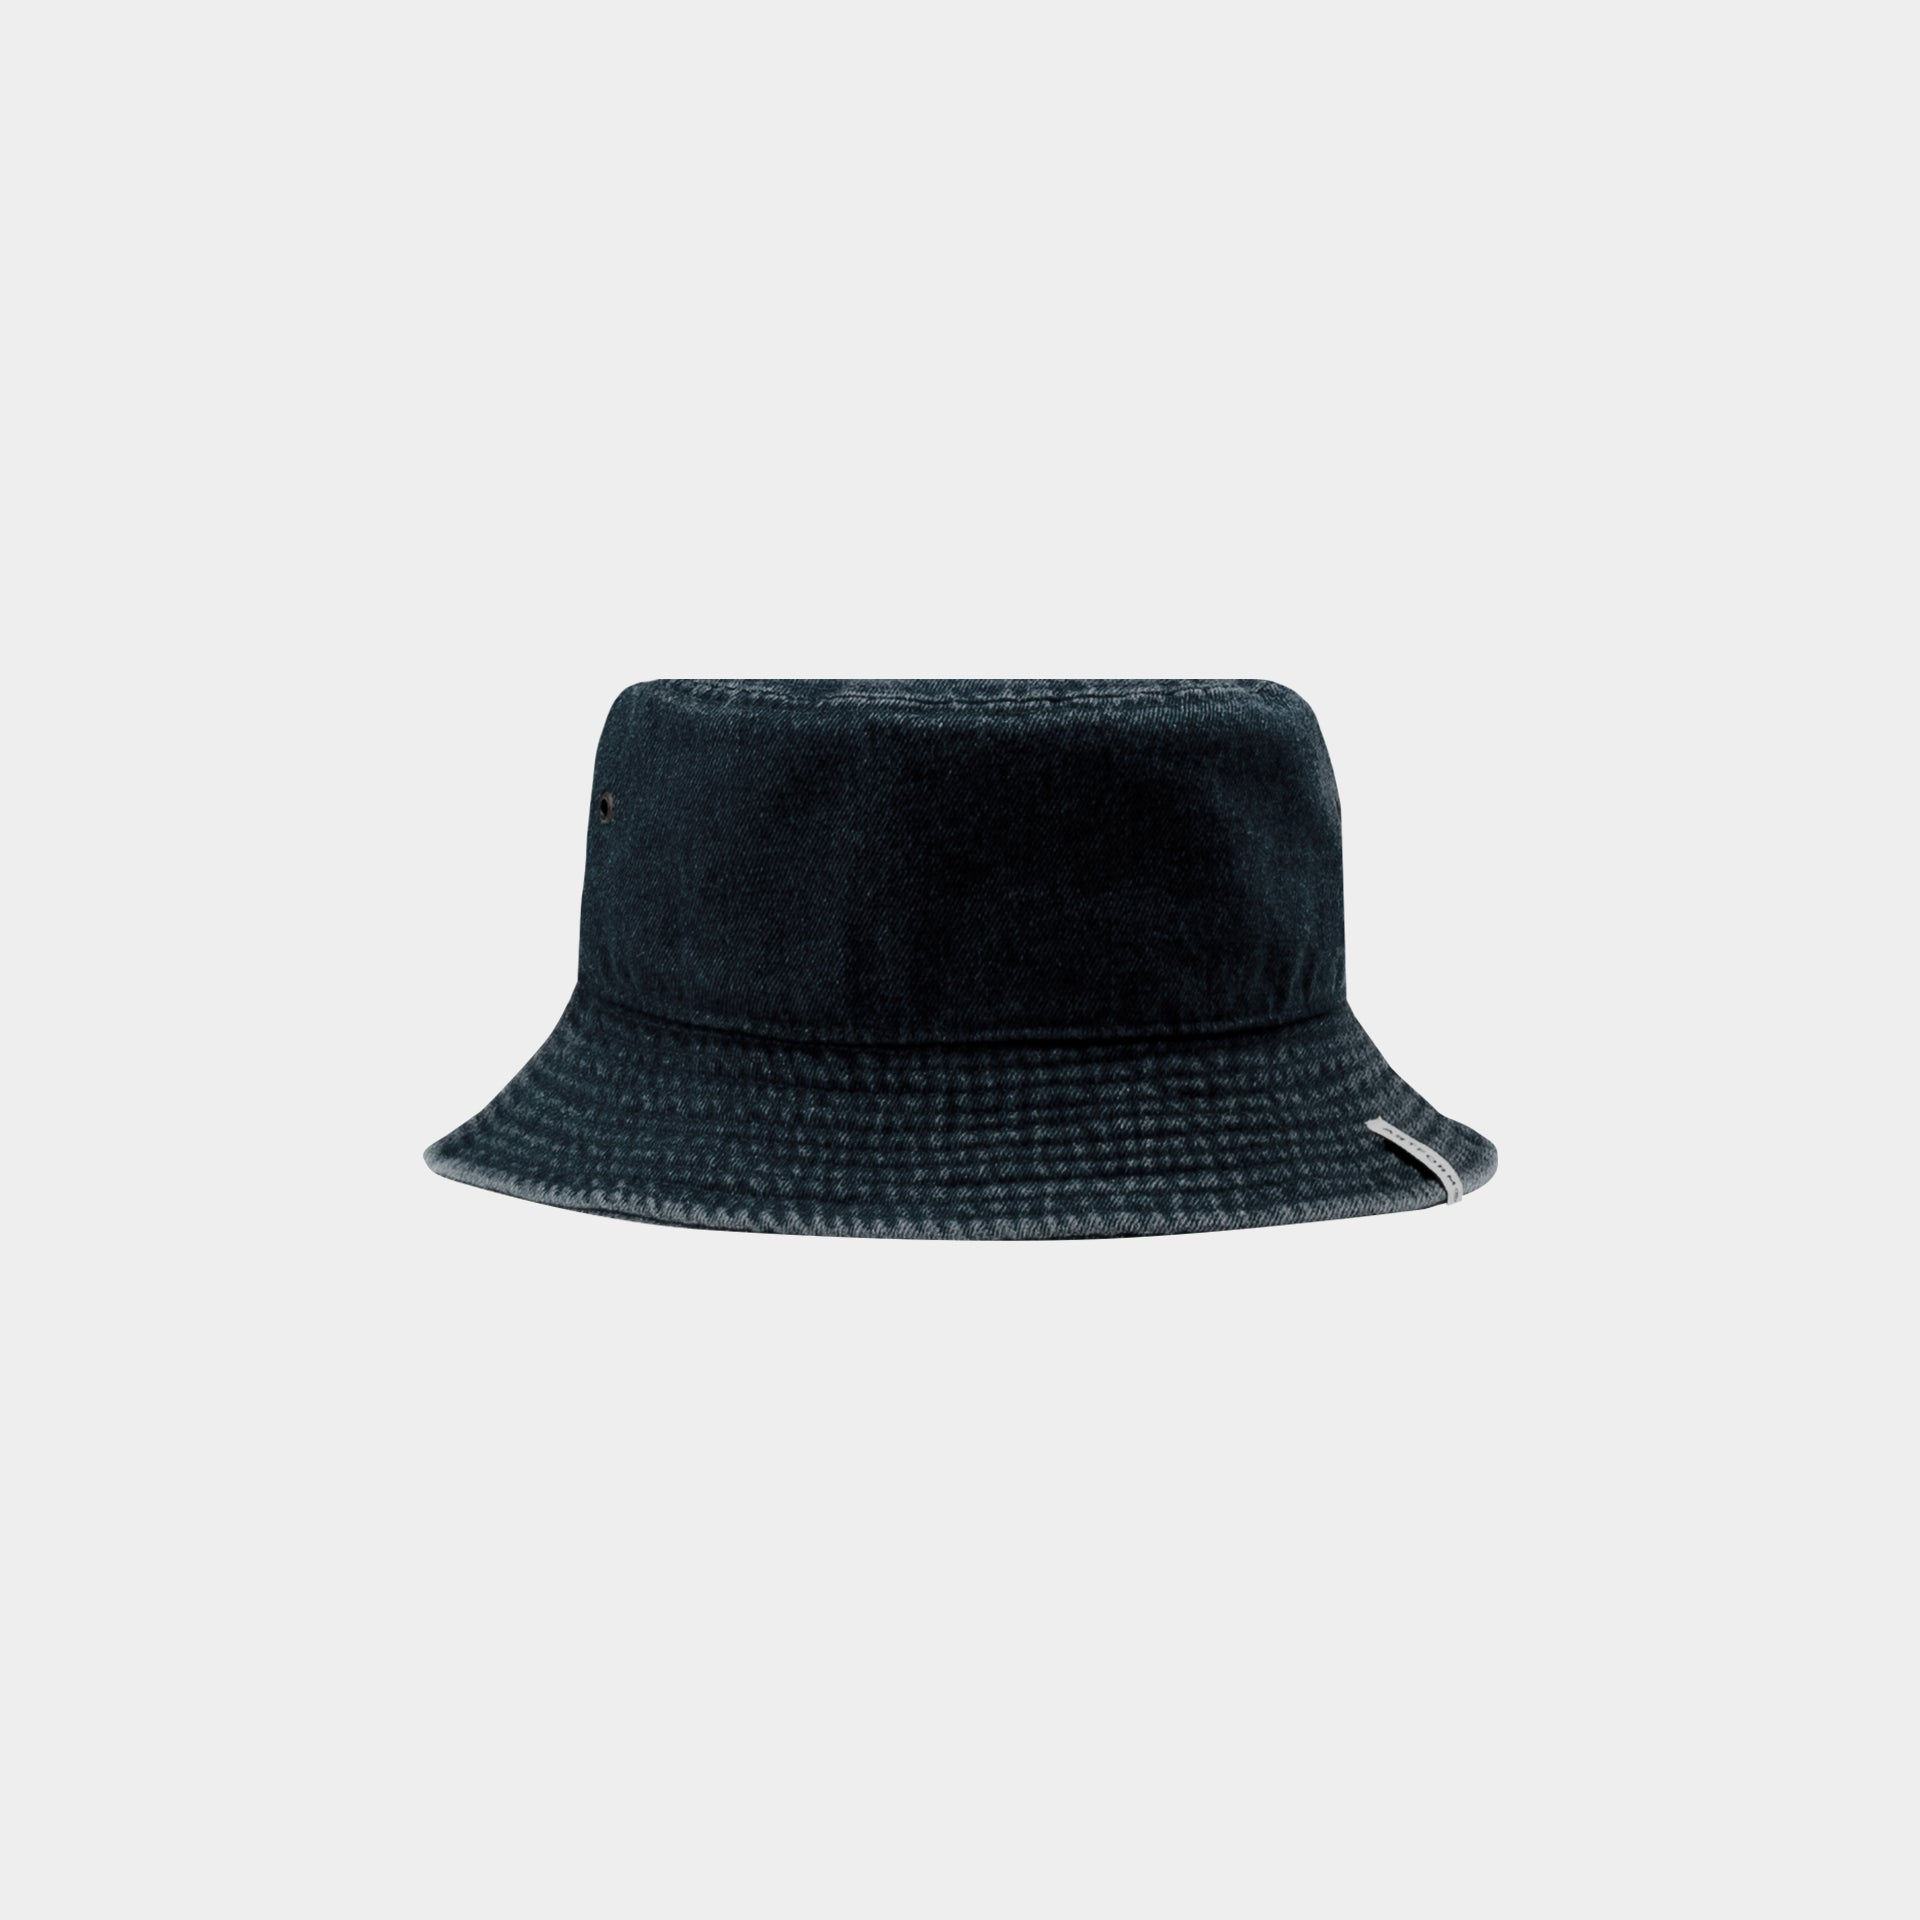 Detail Bucket Black Washed